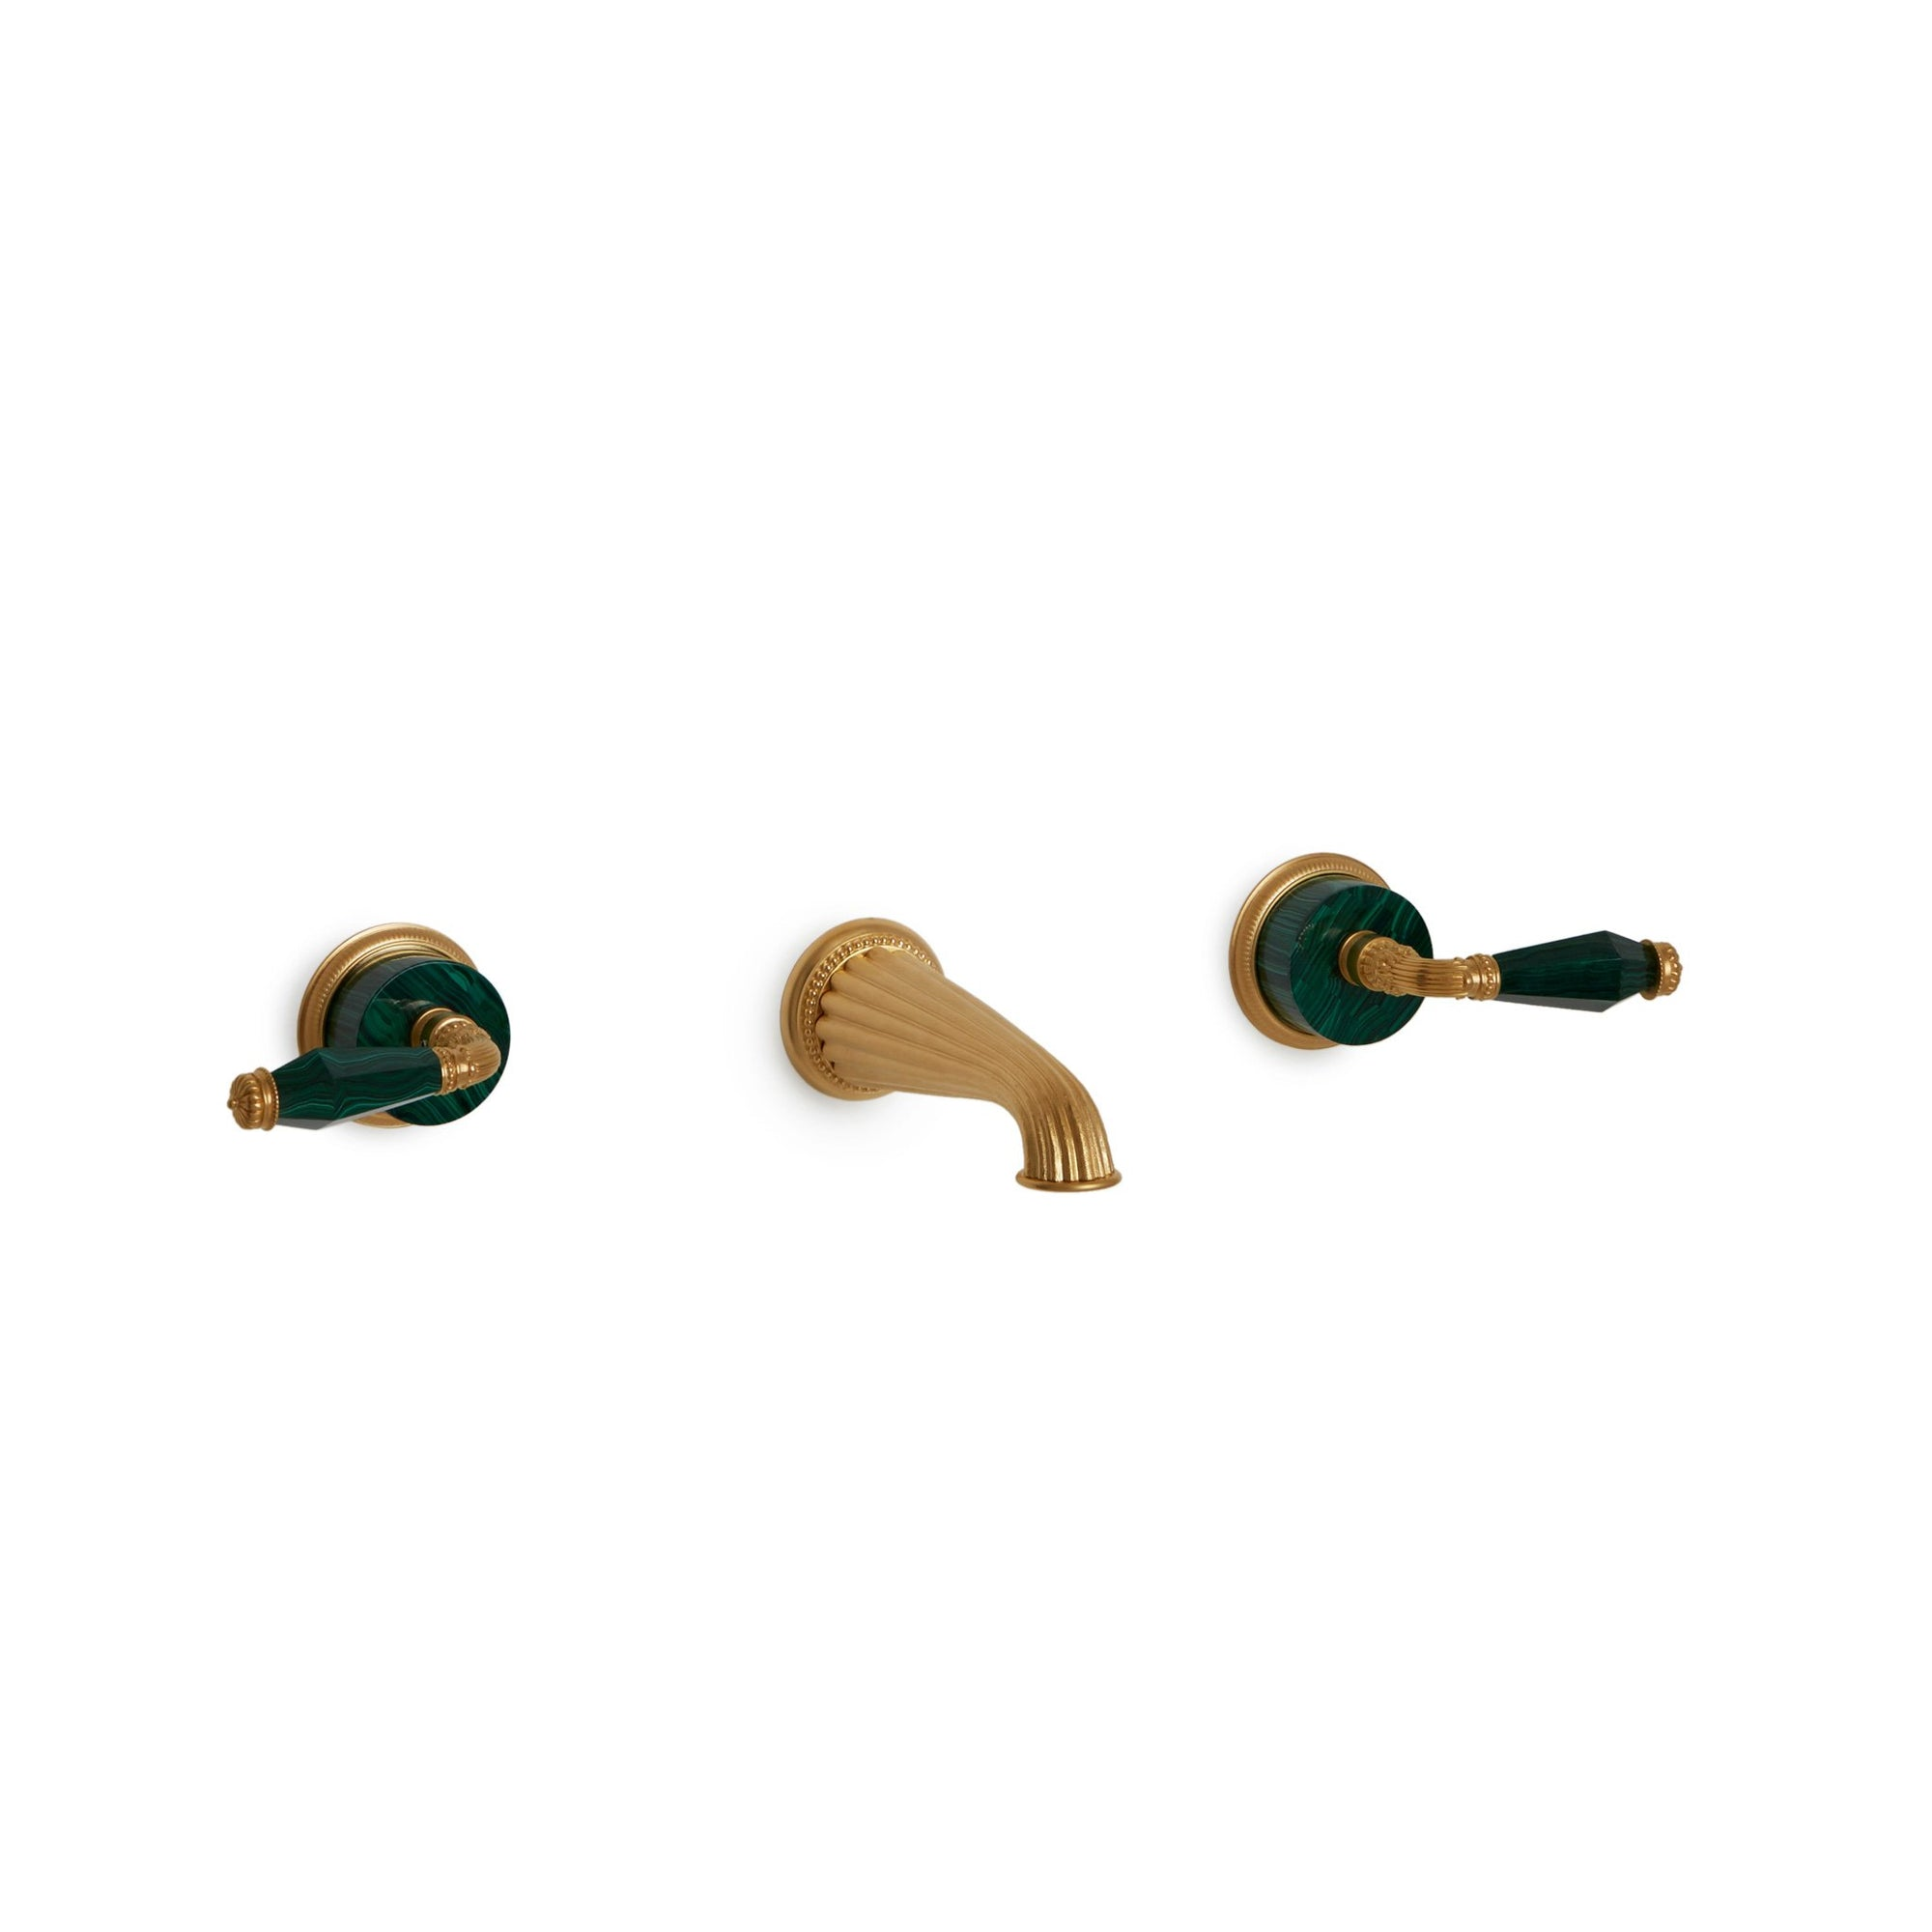 1029WBS821-MALA-GP Sherle Wagner International Semiprecious Knurled Knob Wall Mount Faucet Set in Gold Plate metal finish with Malachite inserts